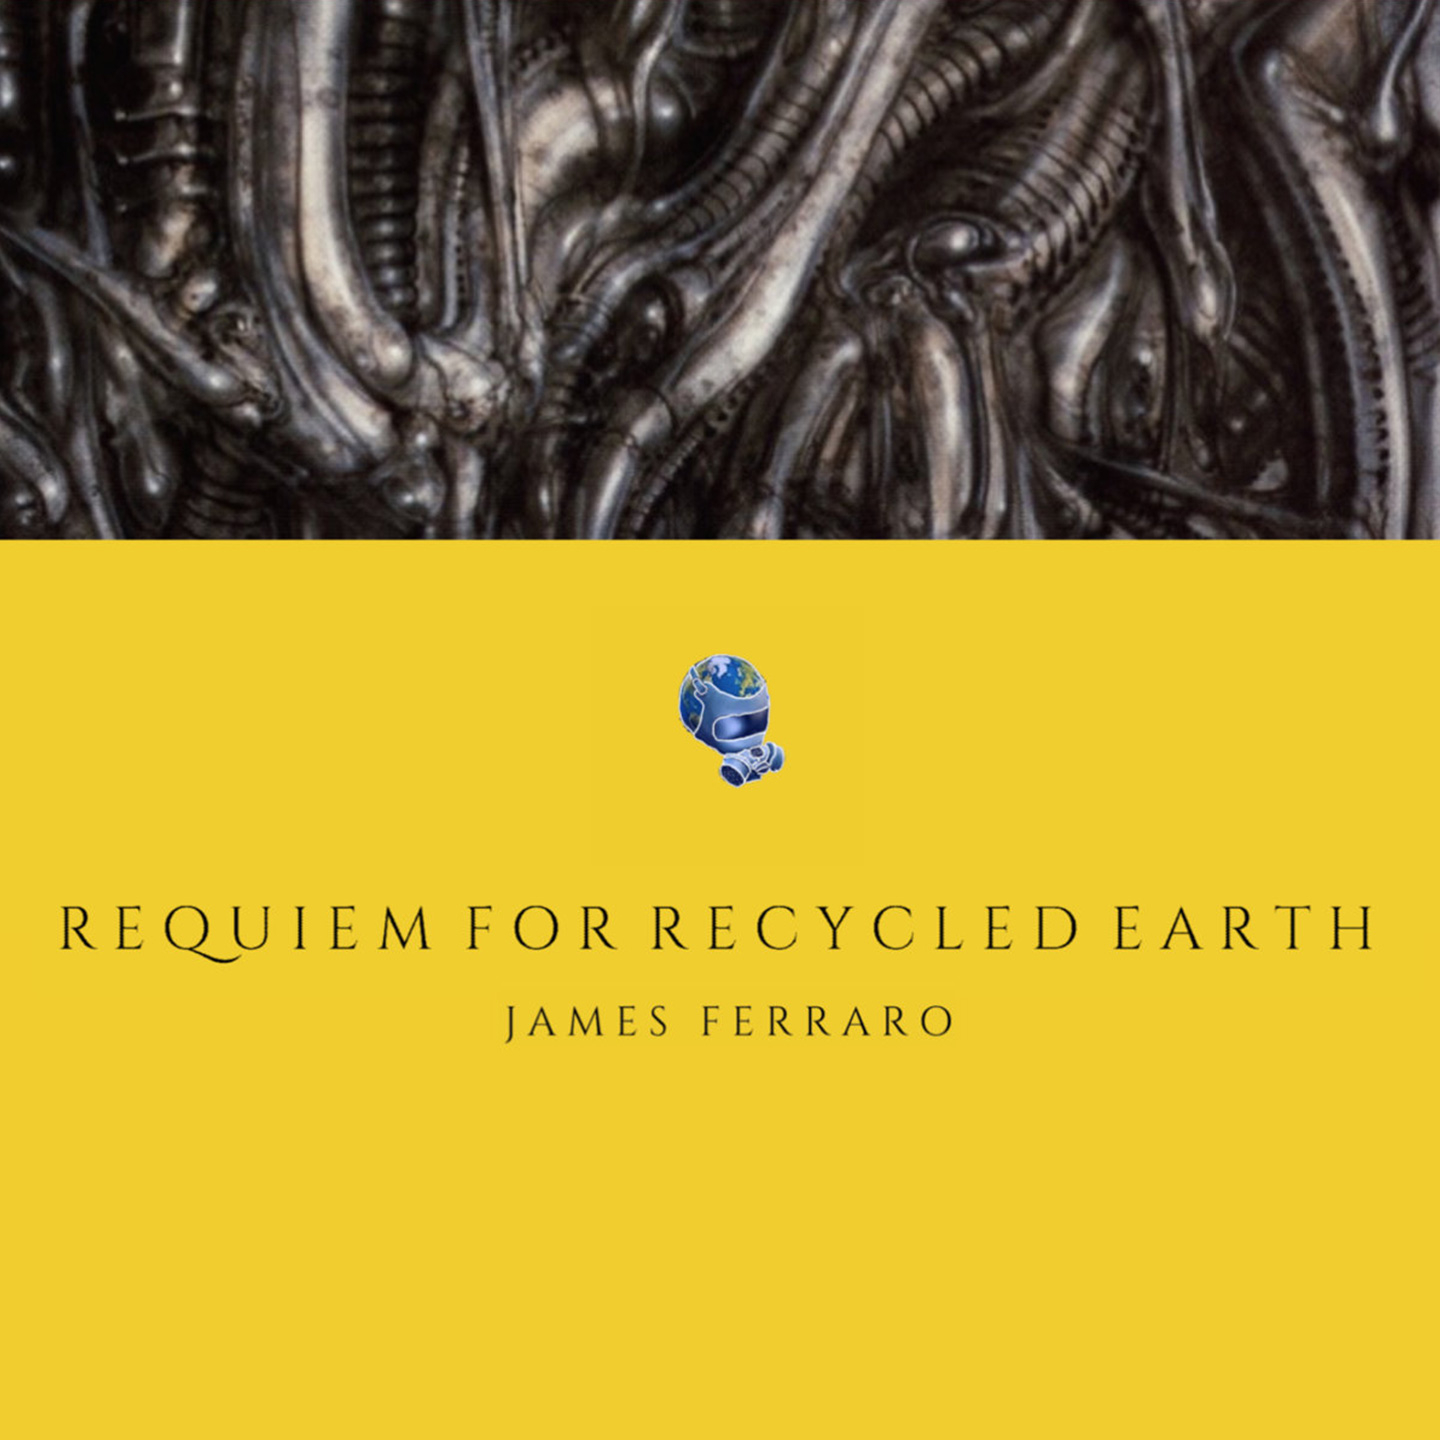 James Ferraro - Requiem For Recycled Earth